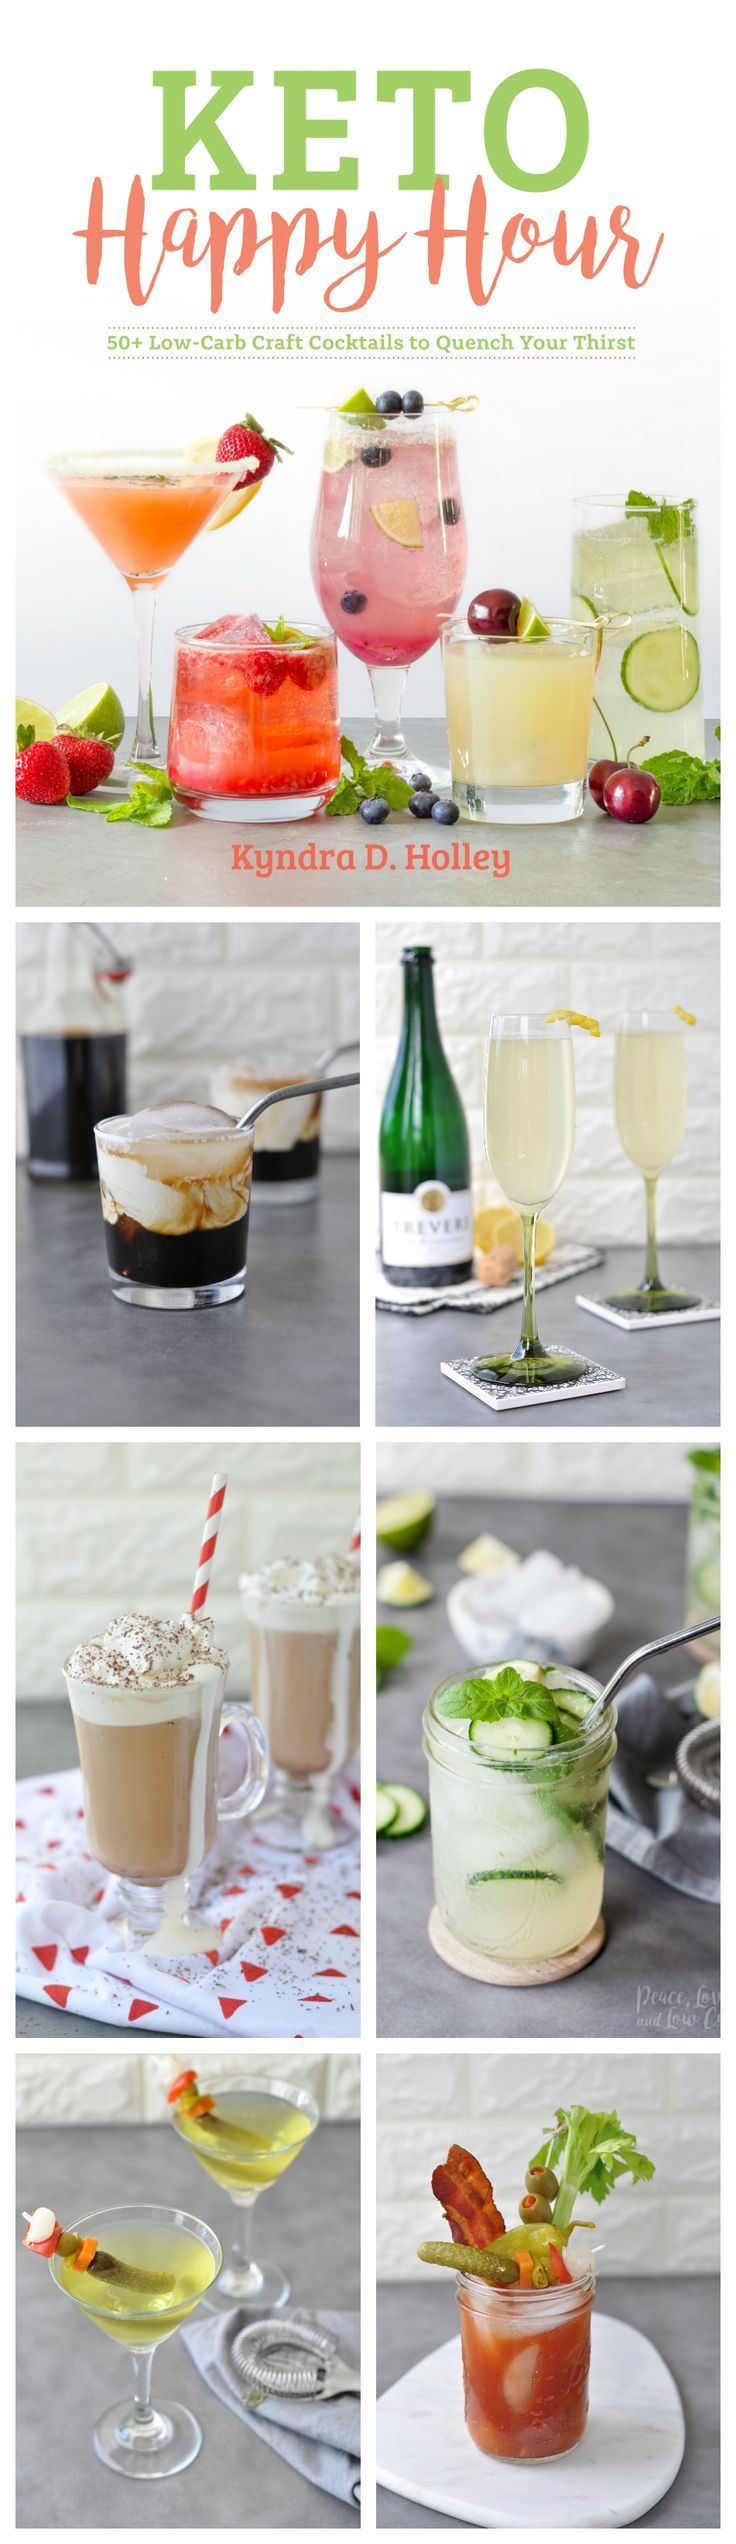 Keto cocktails happy hour 50 low carb craft alcoholic drinks to keto cocktails happy hour 50 low carb craft alcoholic drinks to quench your thirst via peacelovelocarb fandeluxe Gallery